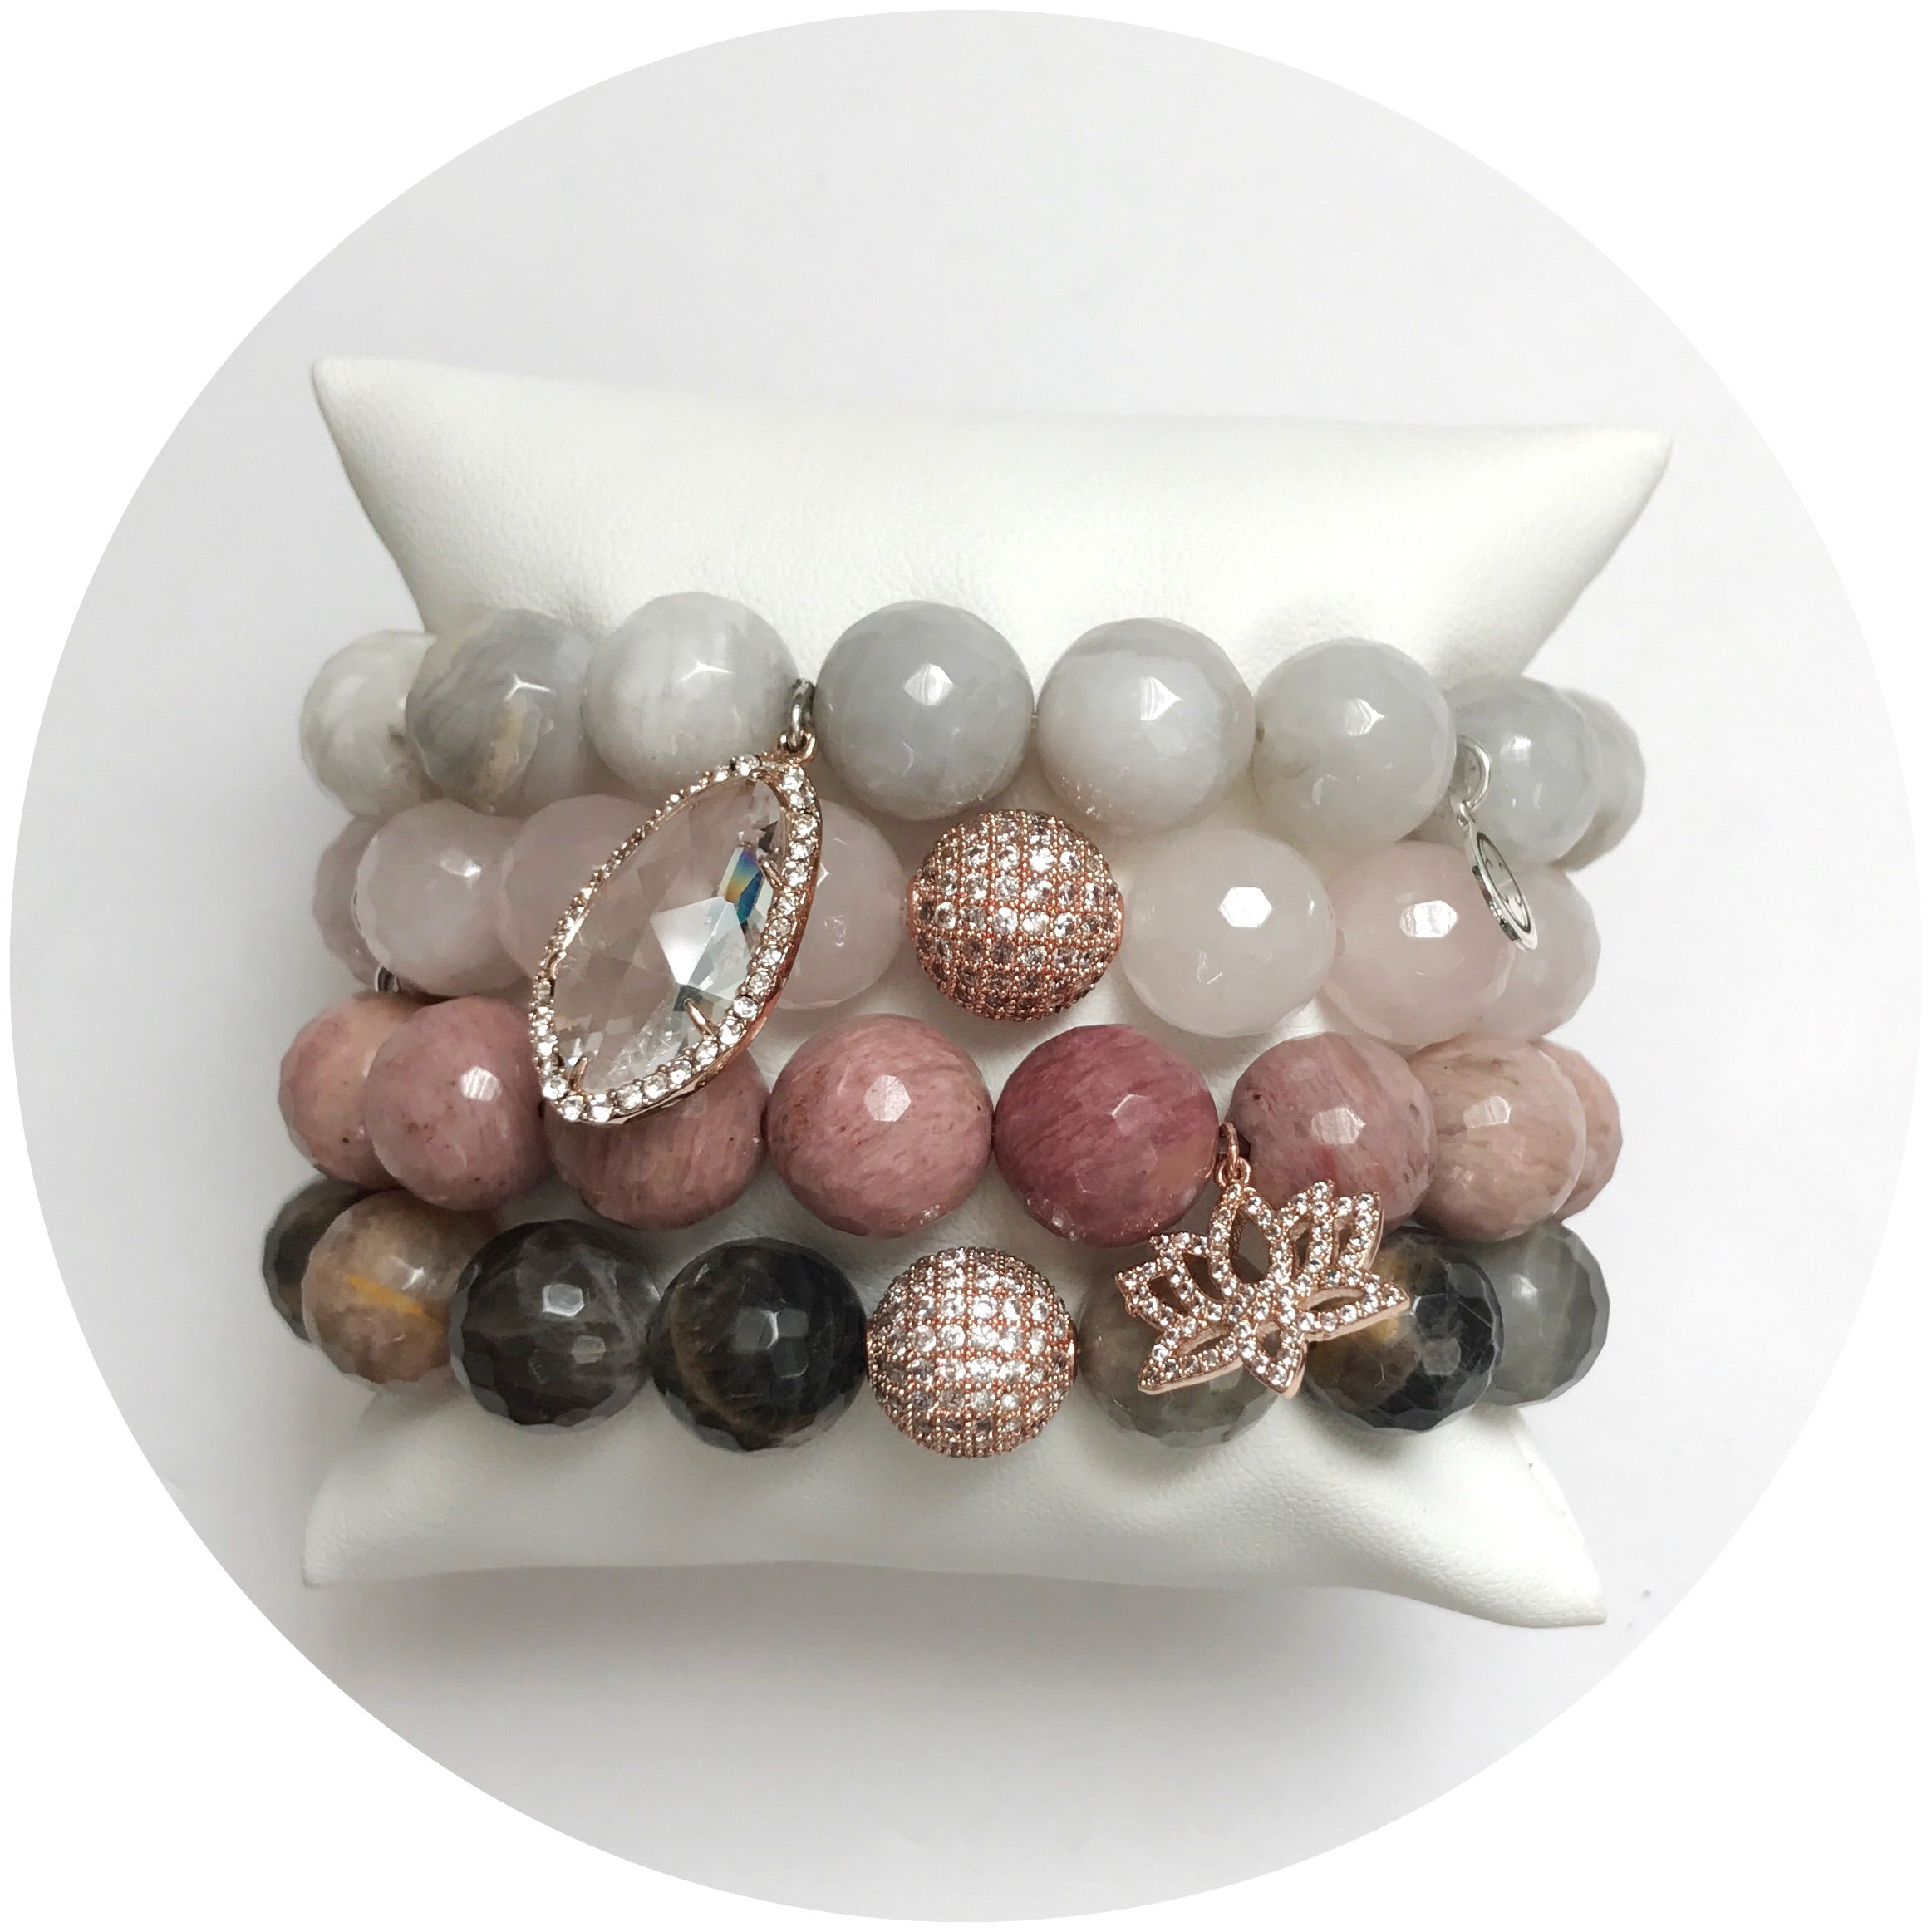 Beautiful Dreamer Armparty - Oriana Lamarca LLC